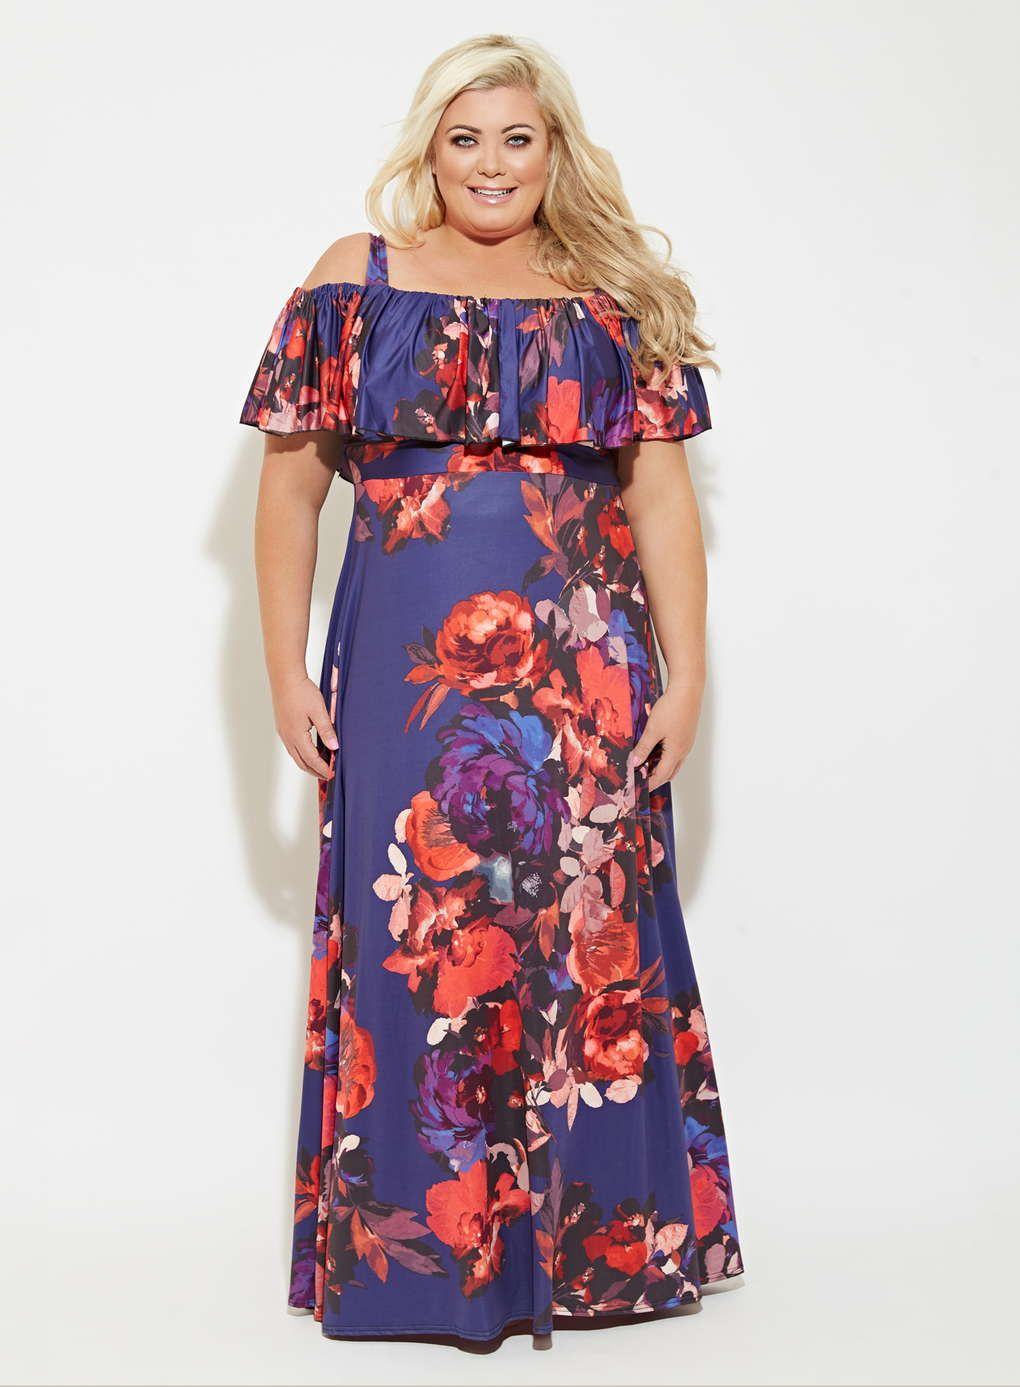 the cheapest lowest discount entire collection Gemma Collins Purple Positano Maxi Dress | Maxi dress, Dresses ...